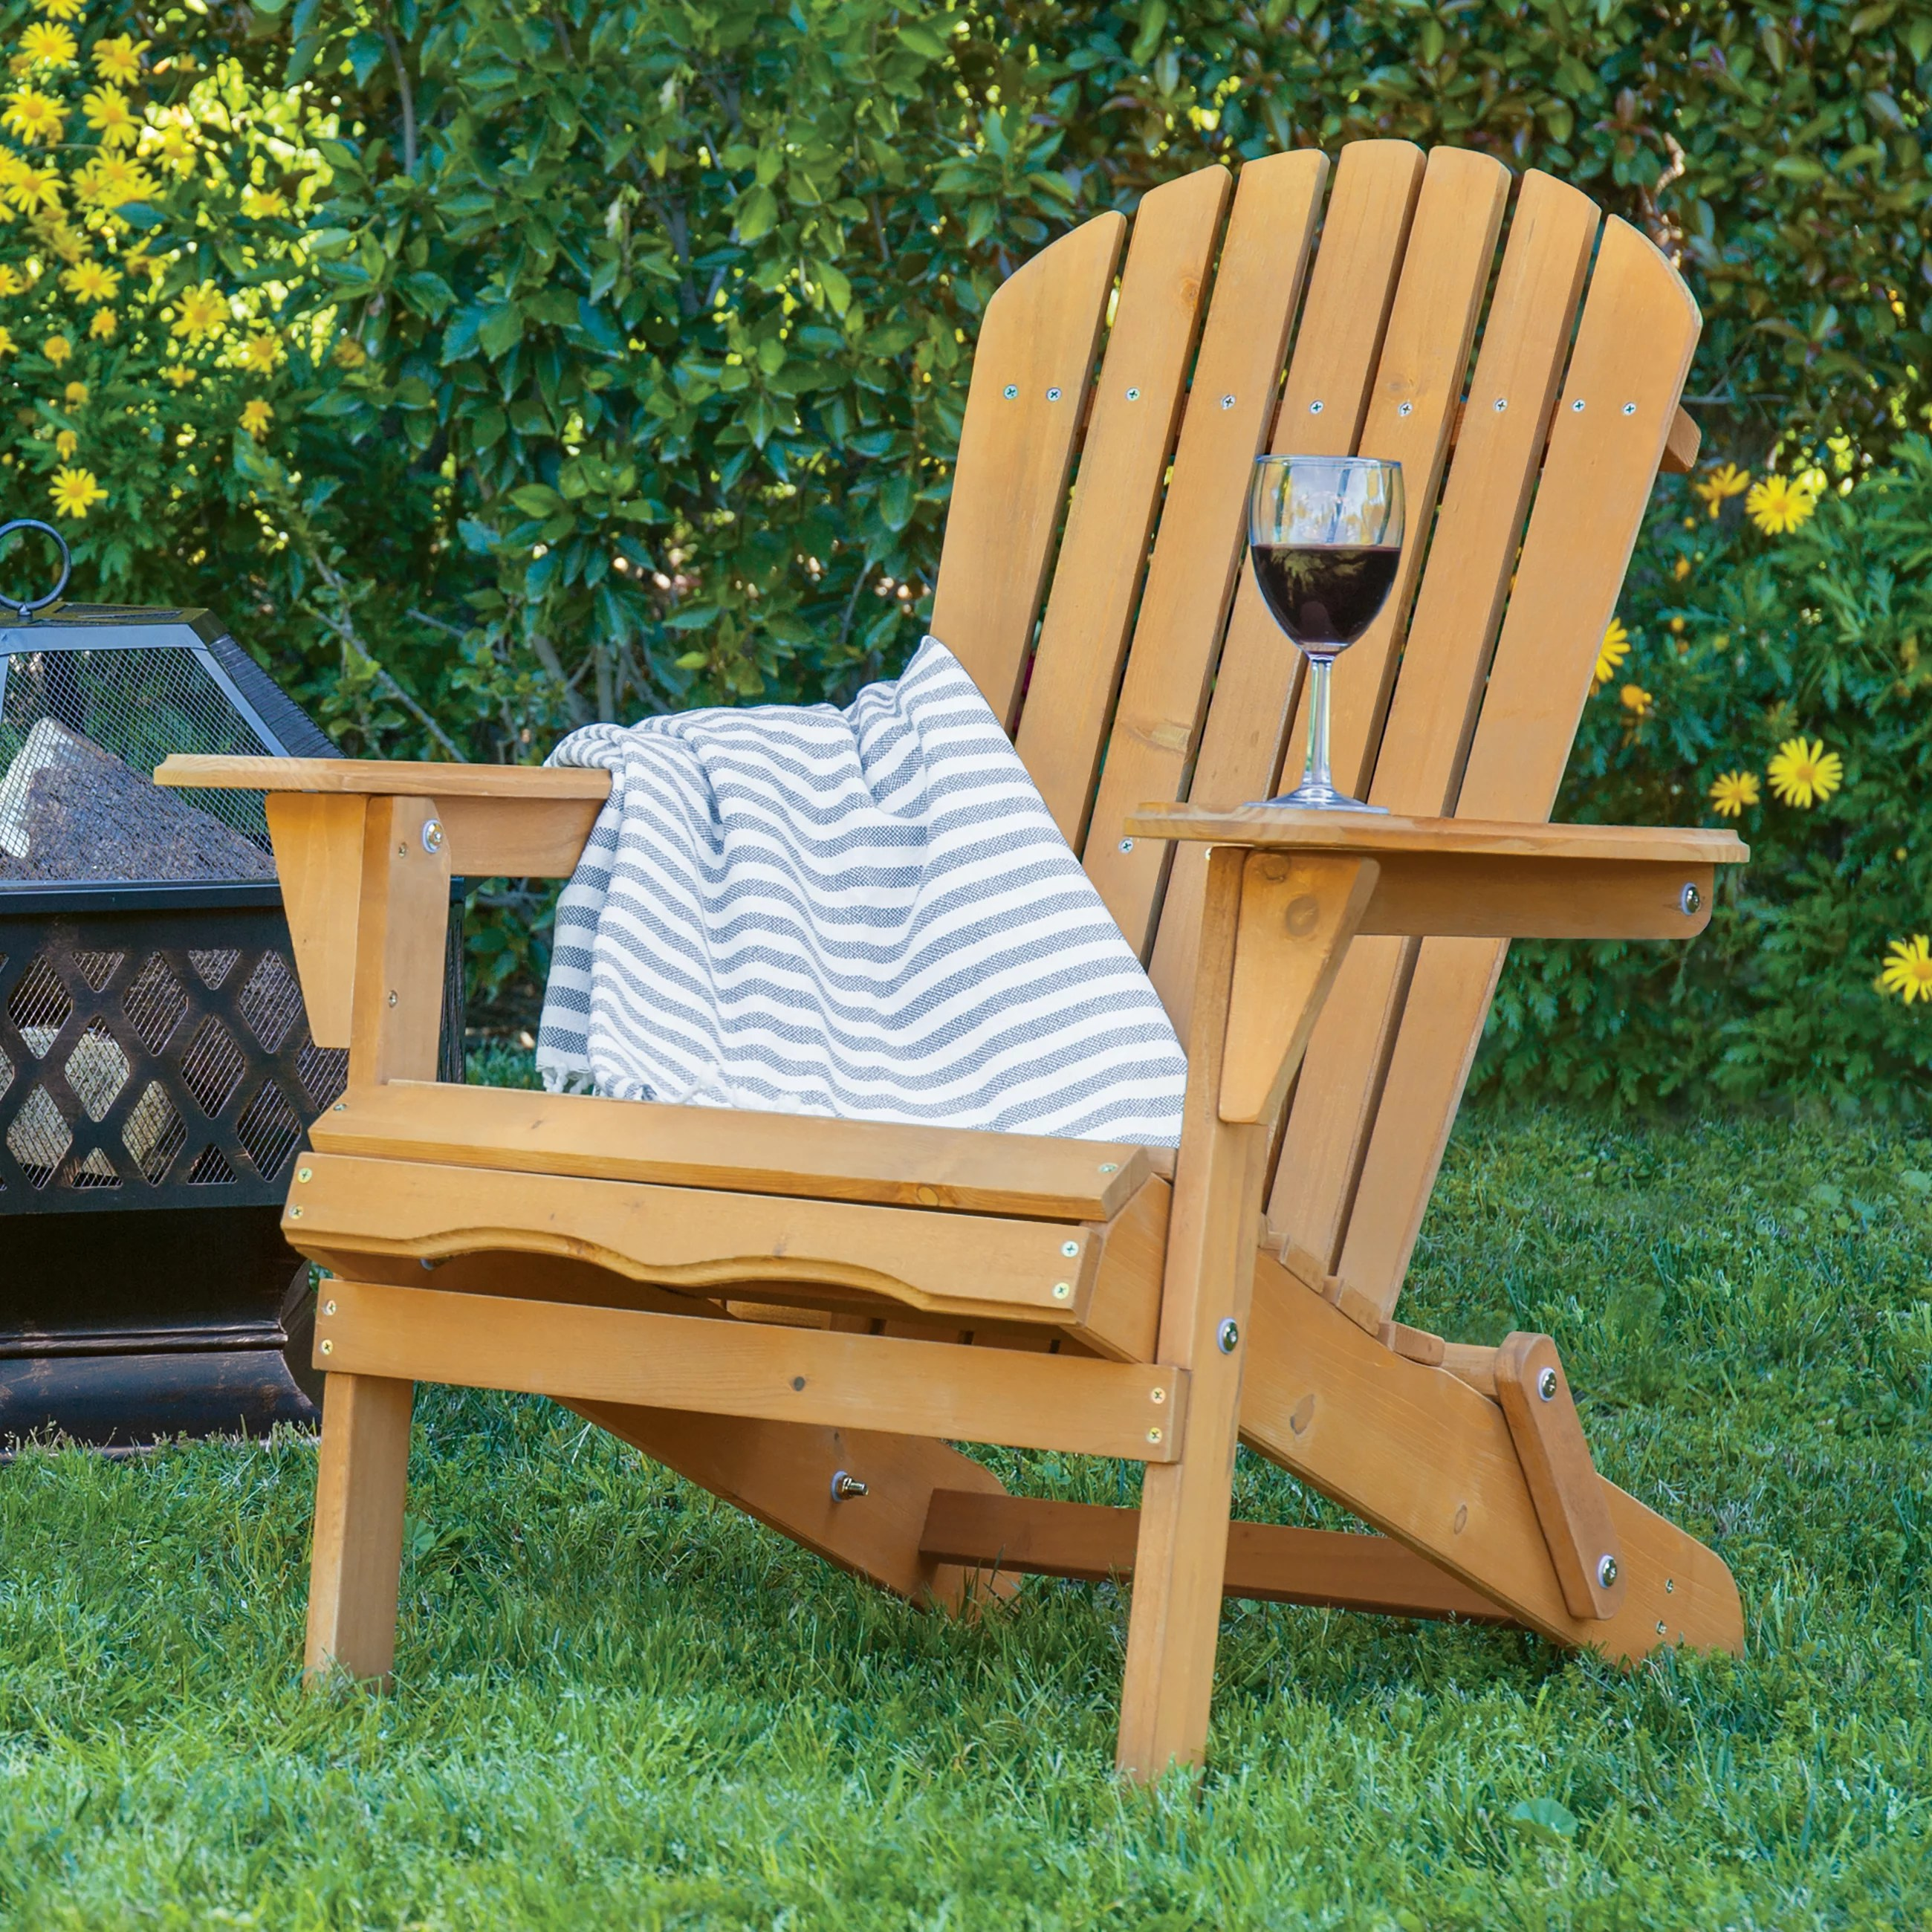 Oversized Patio Chairs Best Choice Products Outdoor Adirondack Wood Chair